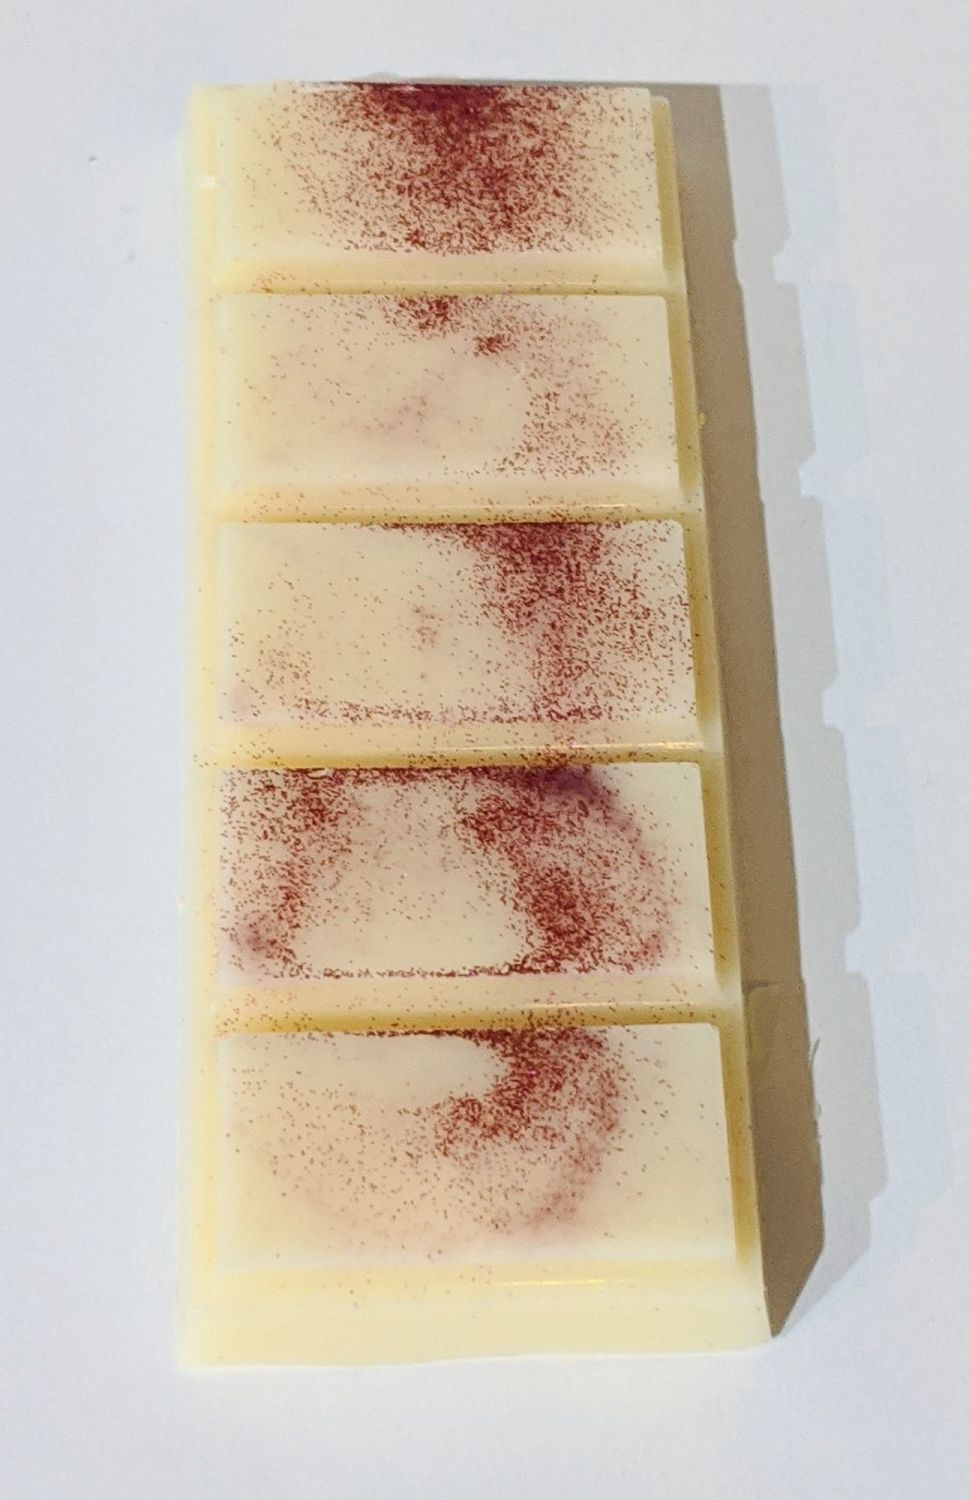 Peony & Blush Suede Soy Wax Melt Snap Bar